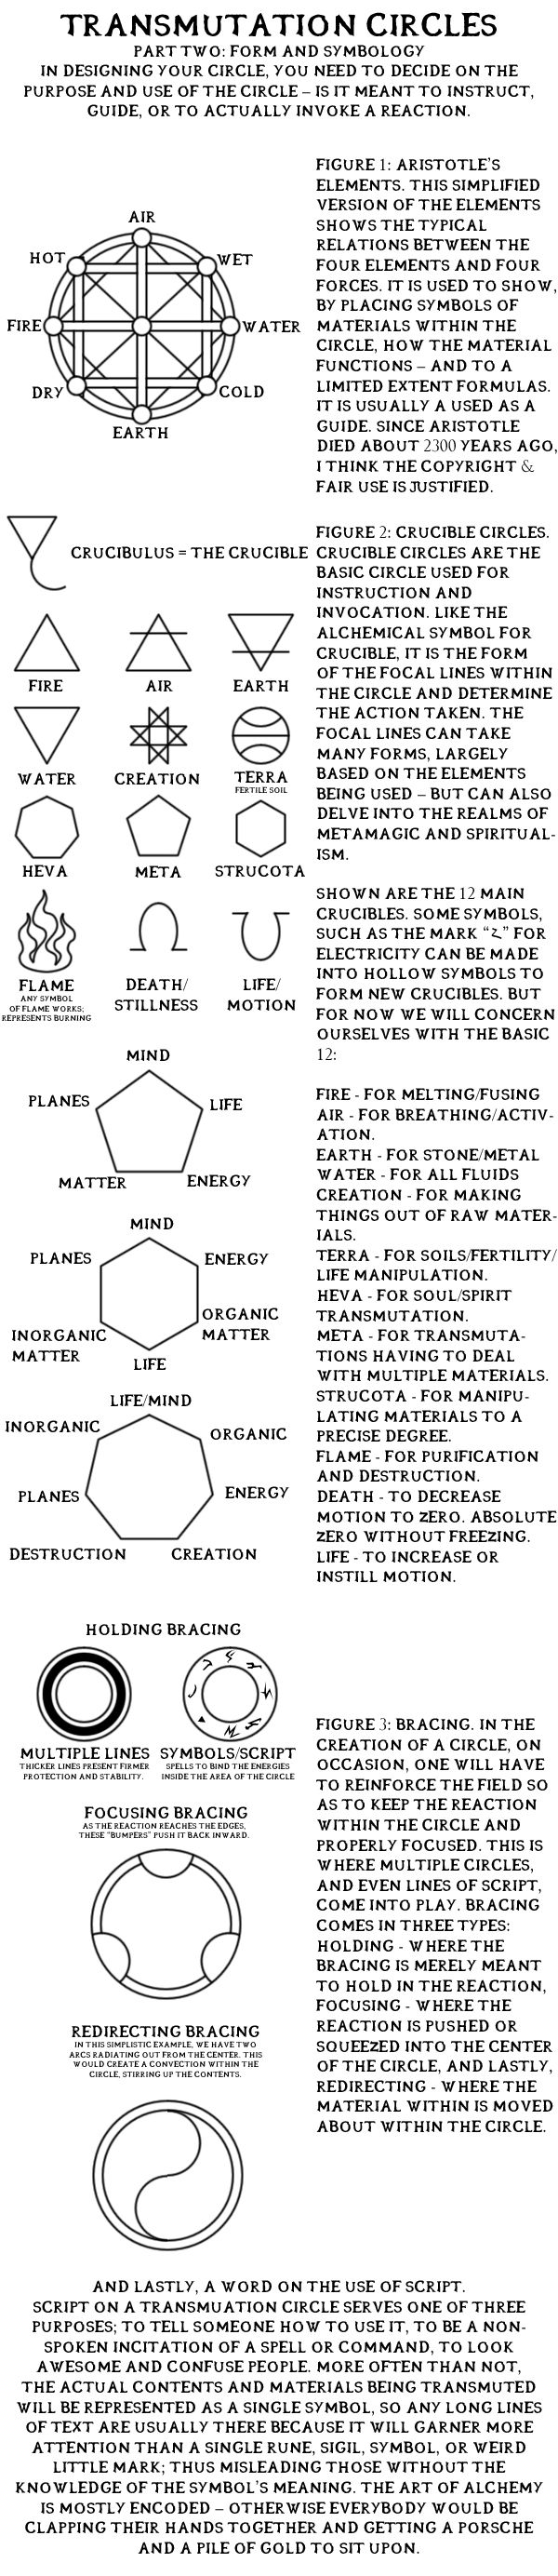 106 best symbols images on pinterest signs sacred geometry and fullmetal alchemist discussion board transmutation circles in fma how do they work explaining transmutation circles found in fma biocorpaavc